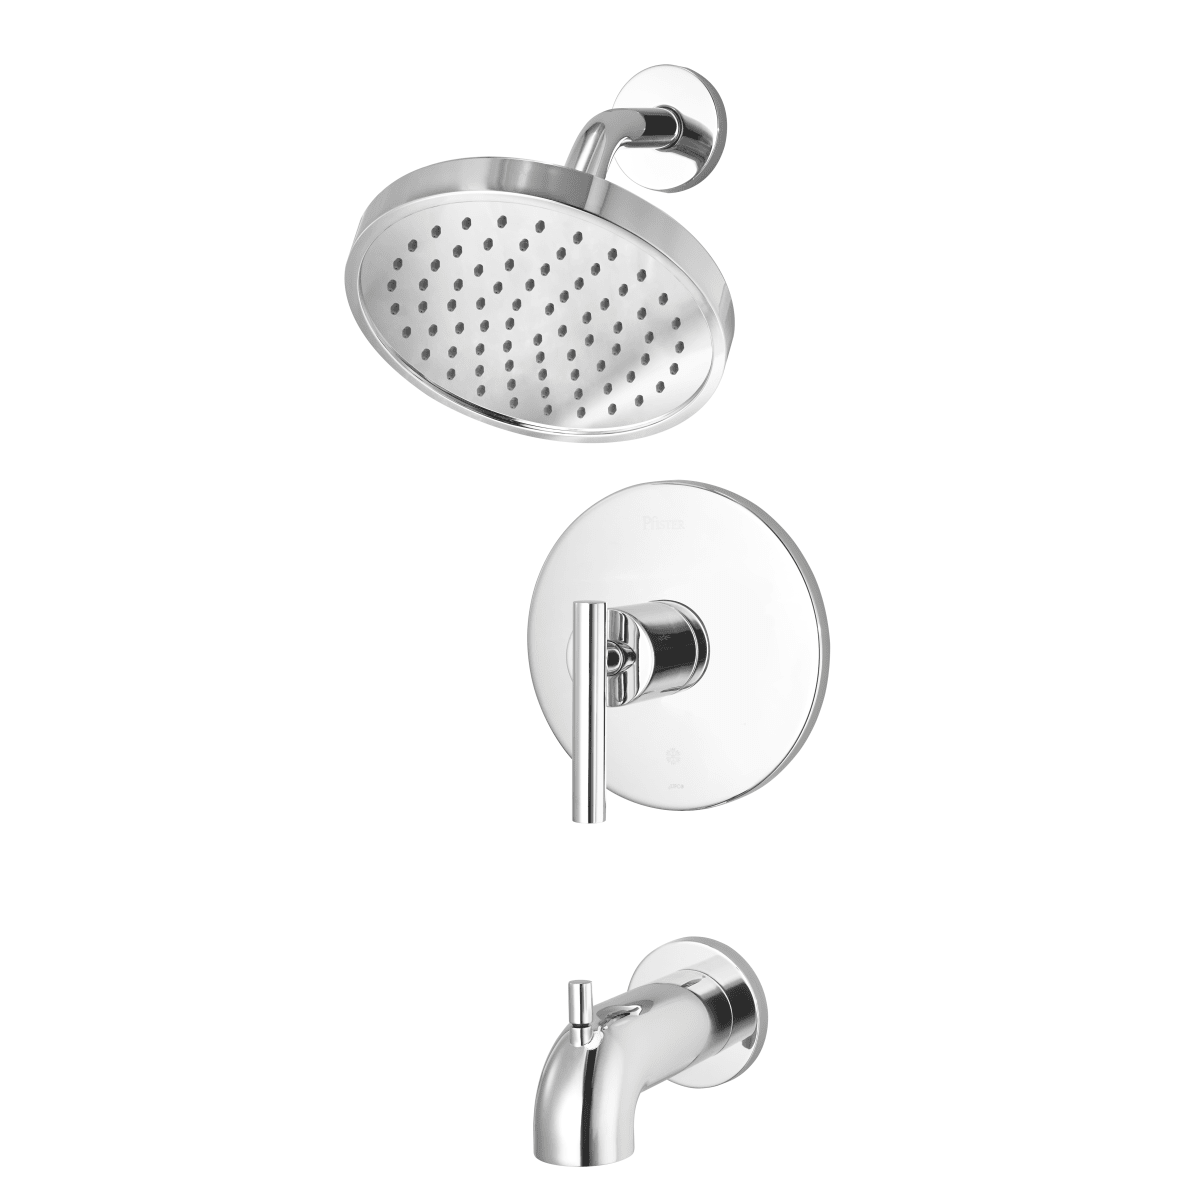 Pfister G89 8nc Tub And Shower Faucet Build Com With Images